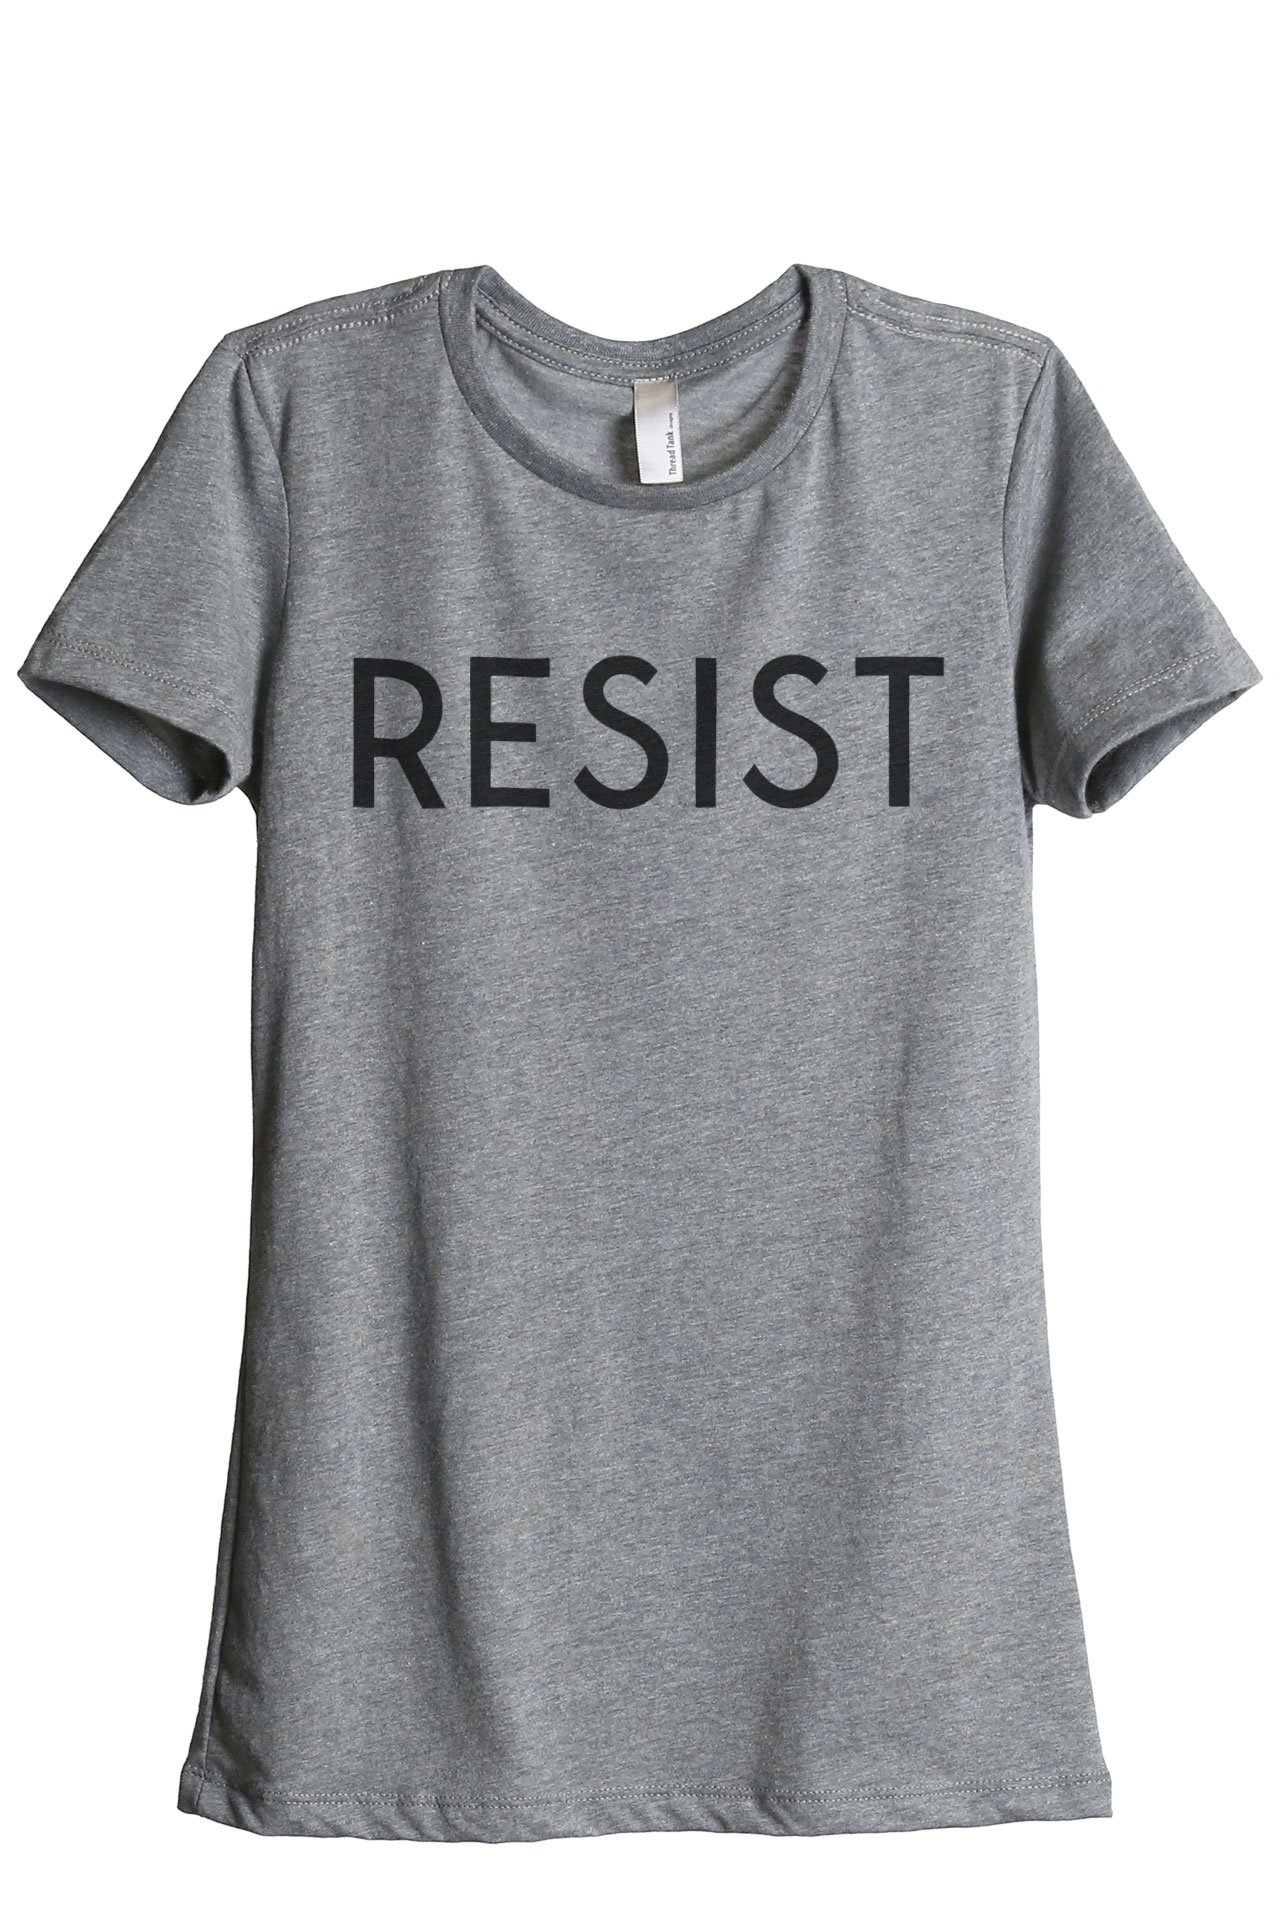 Thread Tank Resist Women's Fashion Relaxed T-Shirt Tee Heather Grey